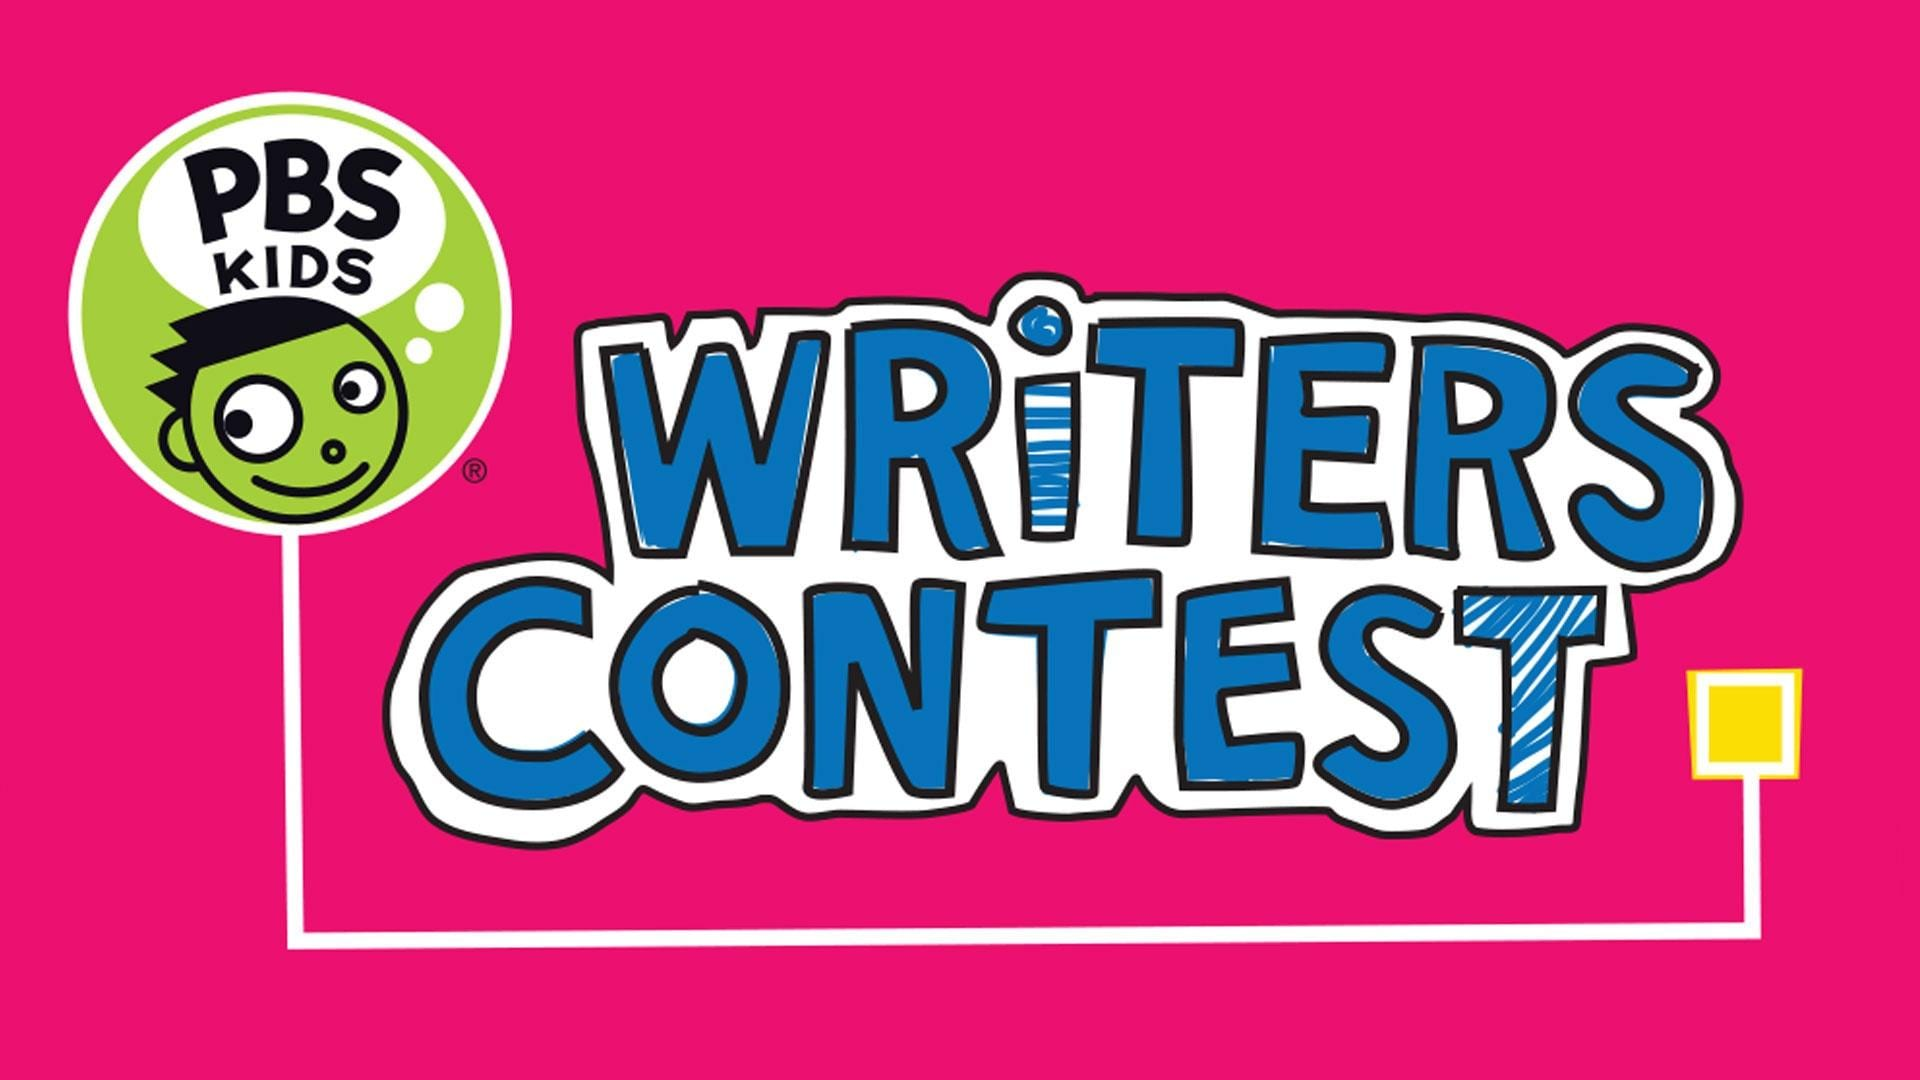 PBS-Kids-Writers-Contest